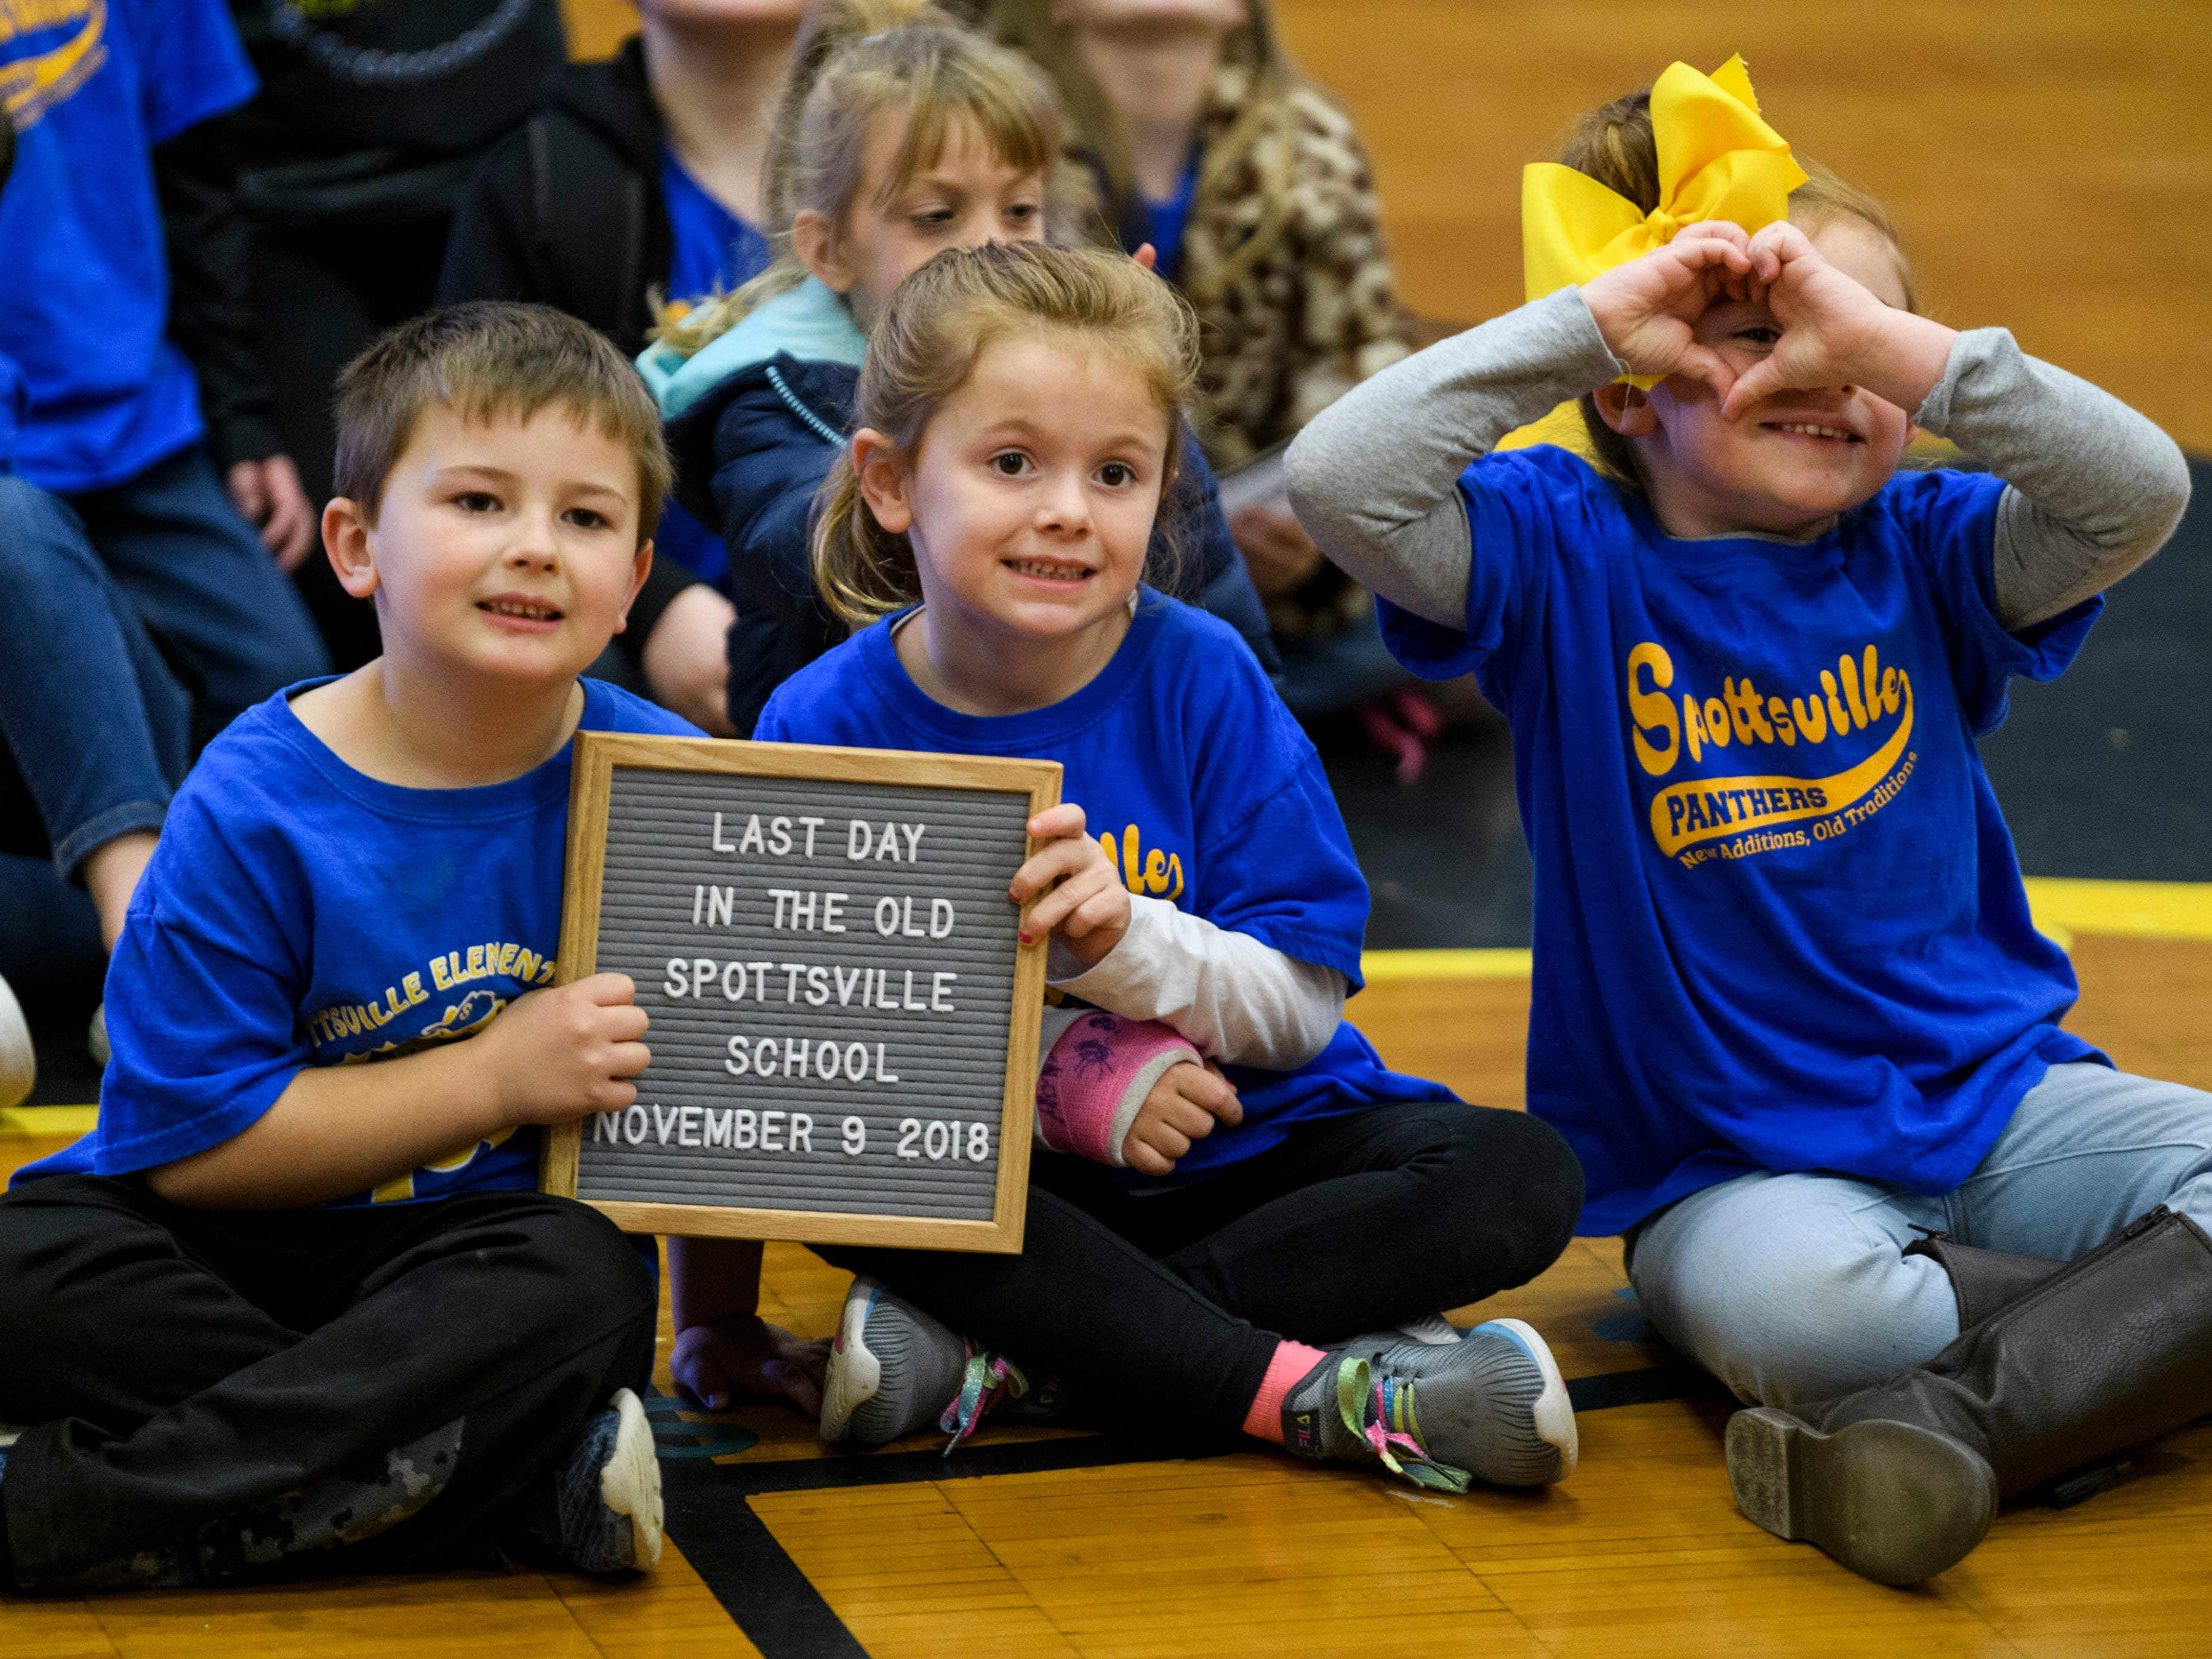 First-graders Jaxon Clark, from left, Laney Pike and Isabella Lane pose for a picture with their class inside the old Spottsville Elementary gymnasium to commemorate their last day of learning in the Henderson County school building, Friday, Nov. 9, 2018. They are scheduled to start classes in the new $17 million, 76,796-square-foot facility, which is located right beside the old building, Monday morning, November 12.